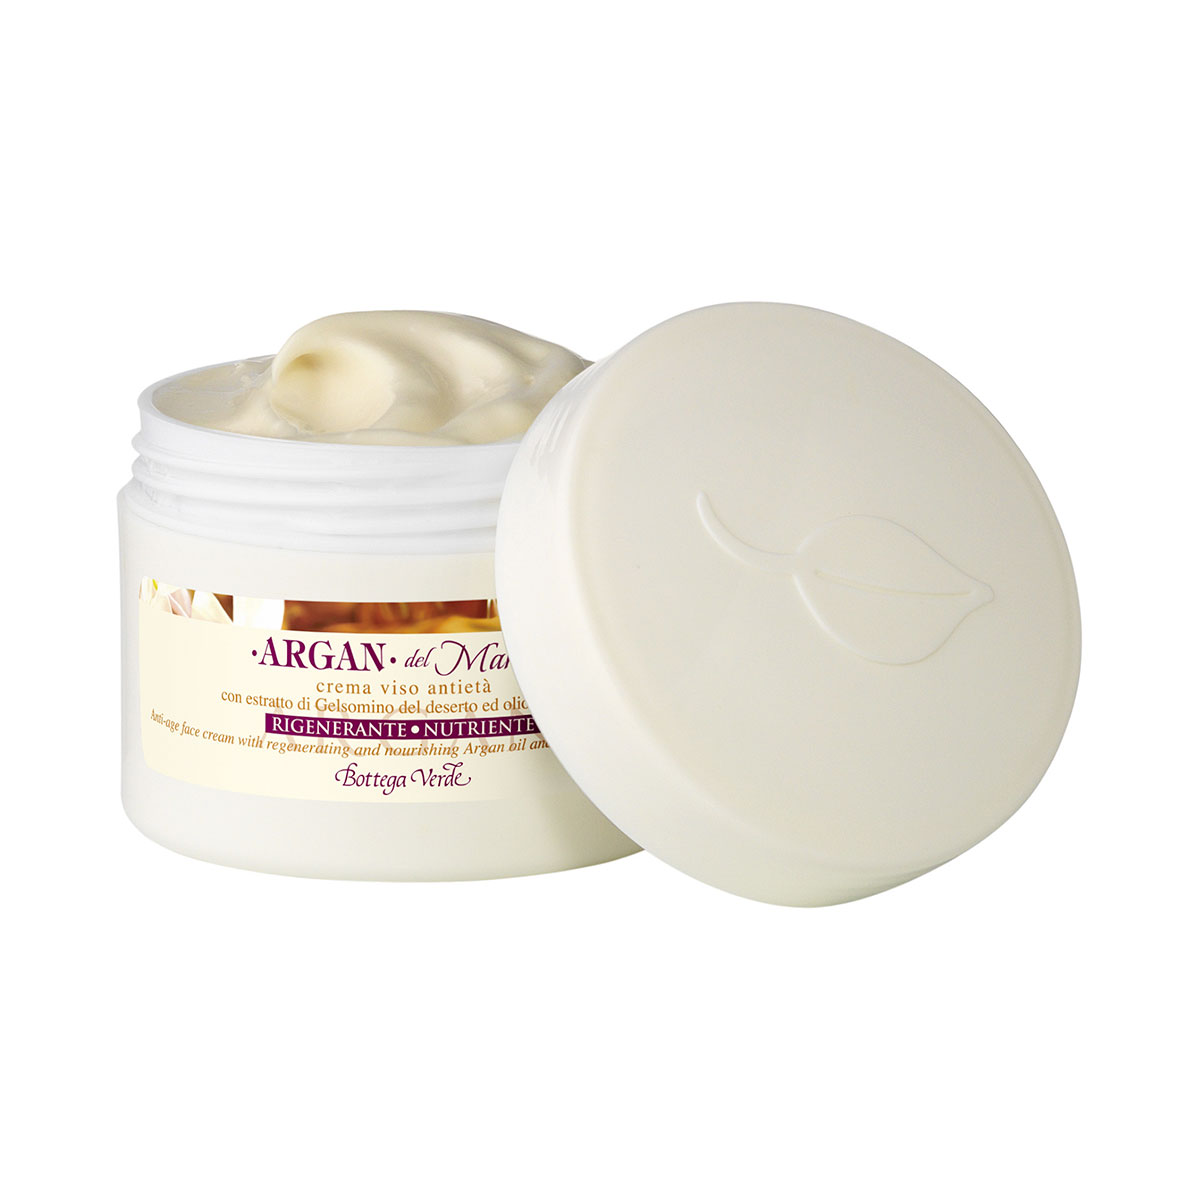 Moroccan Argan - Anti-age Face cream with regenerating and nourishing Argan oil and Desert Jasmine extract (50 ml)